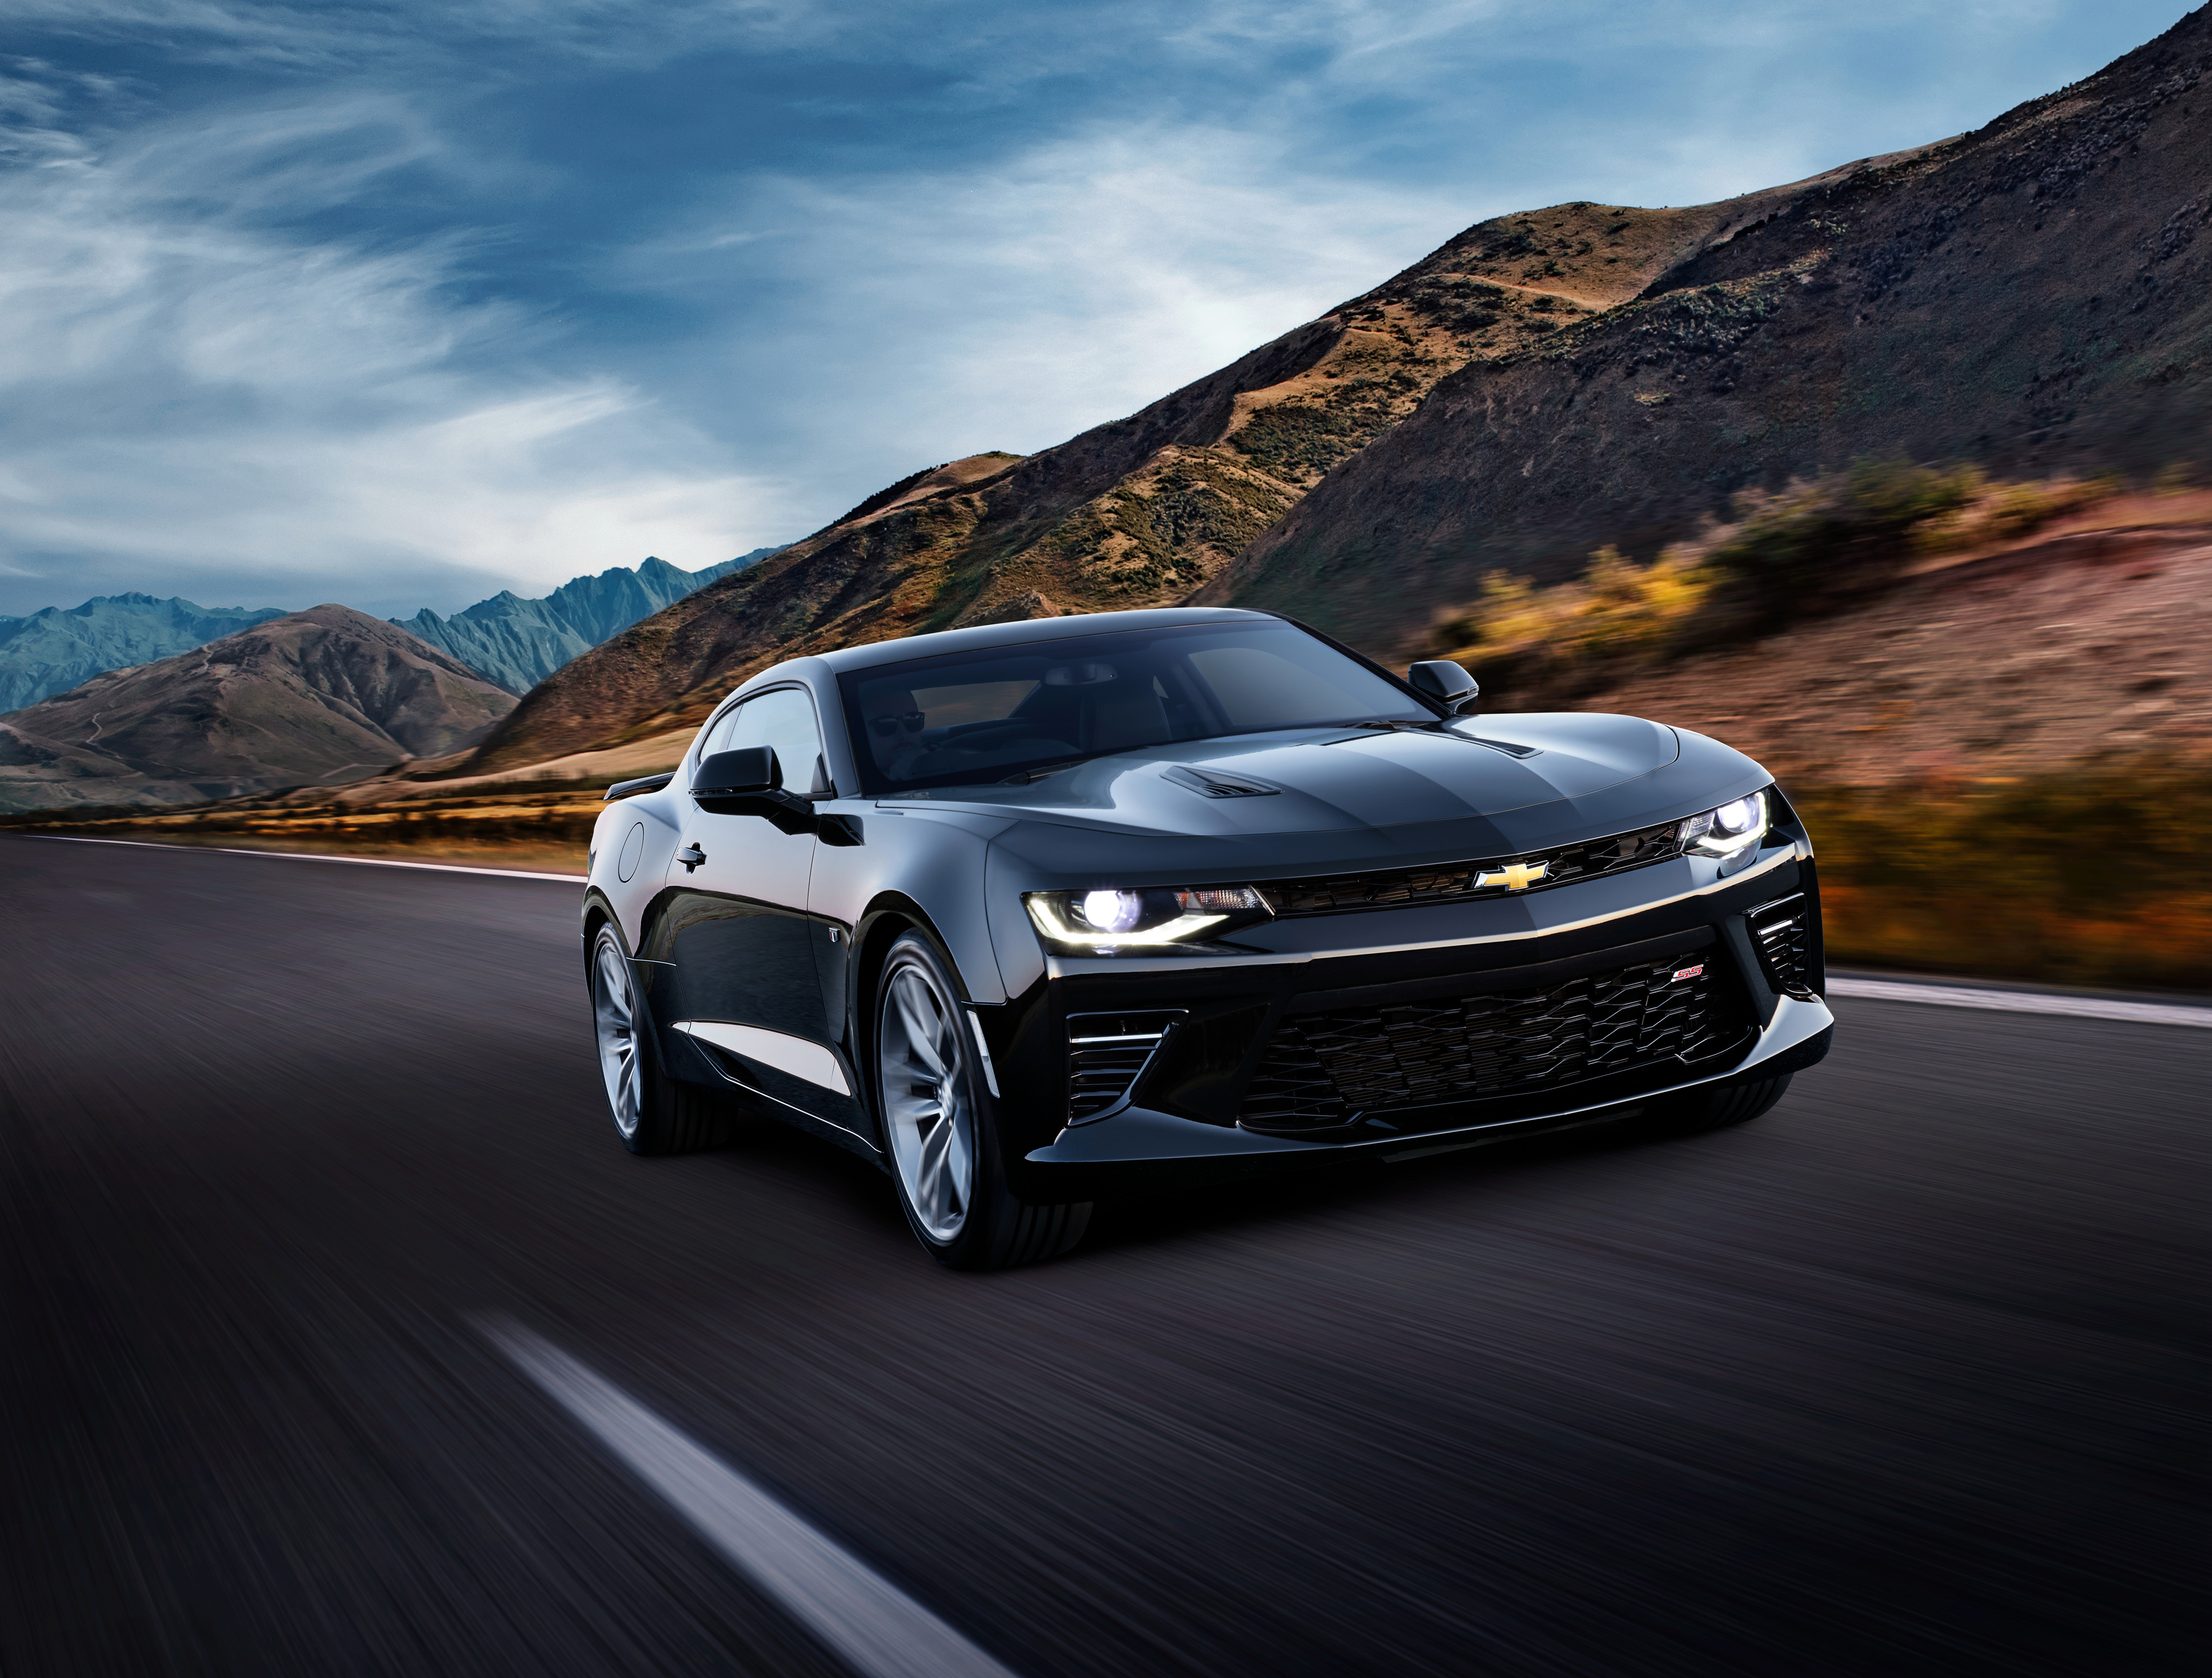 Chevrolet Camaro Ss 2018 4k Hd Cars 4k Wallpapers Images Backgrounds Photos And Pictures